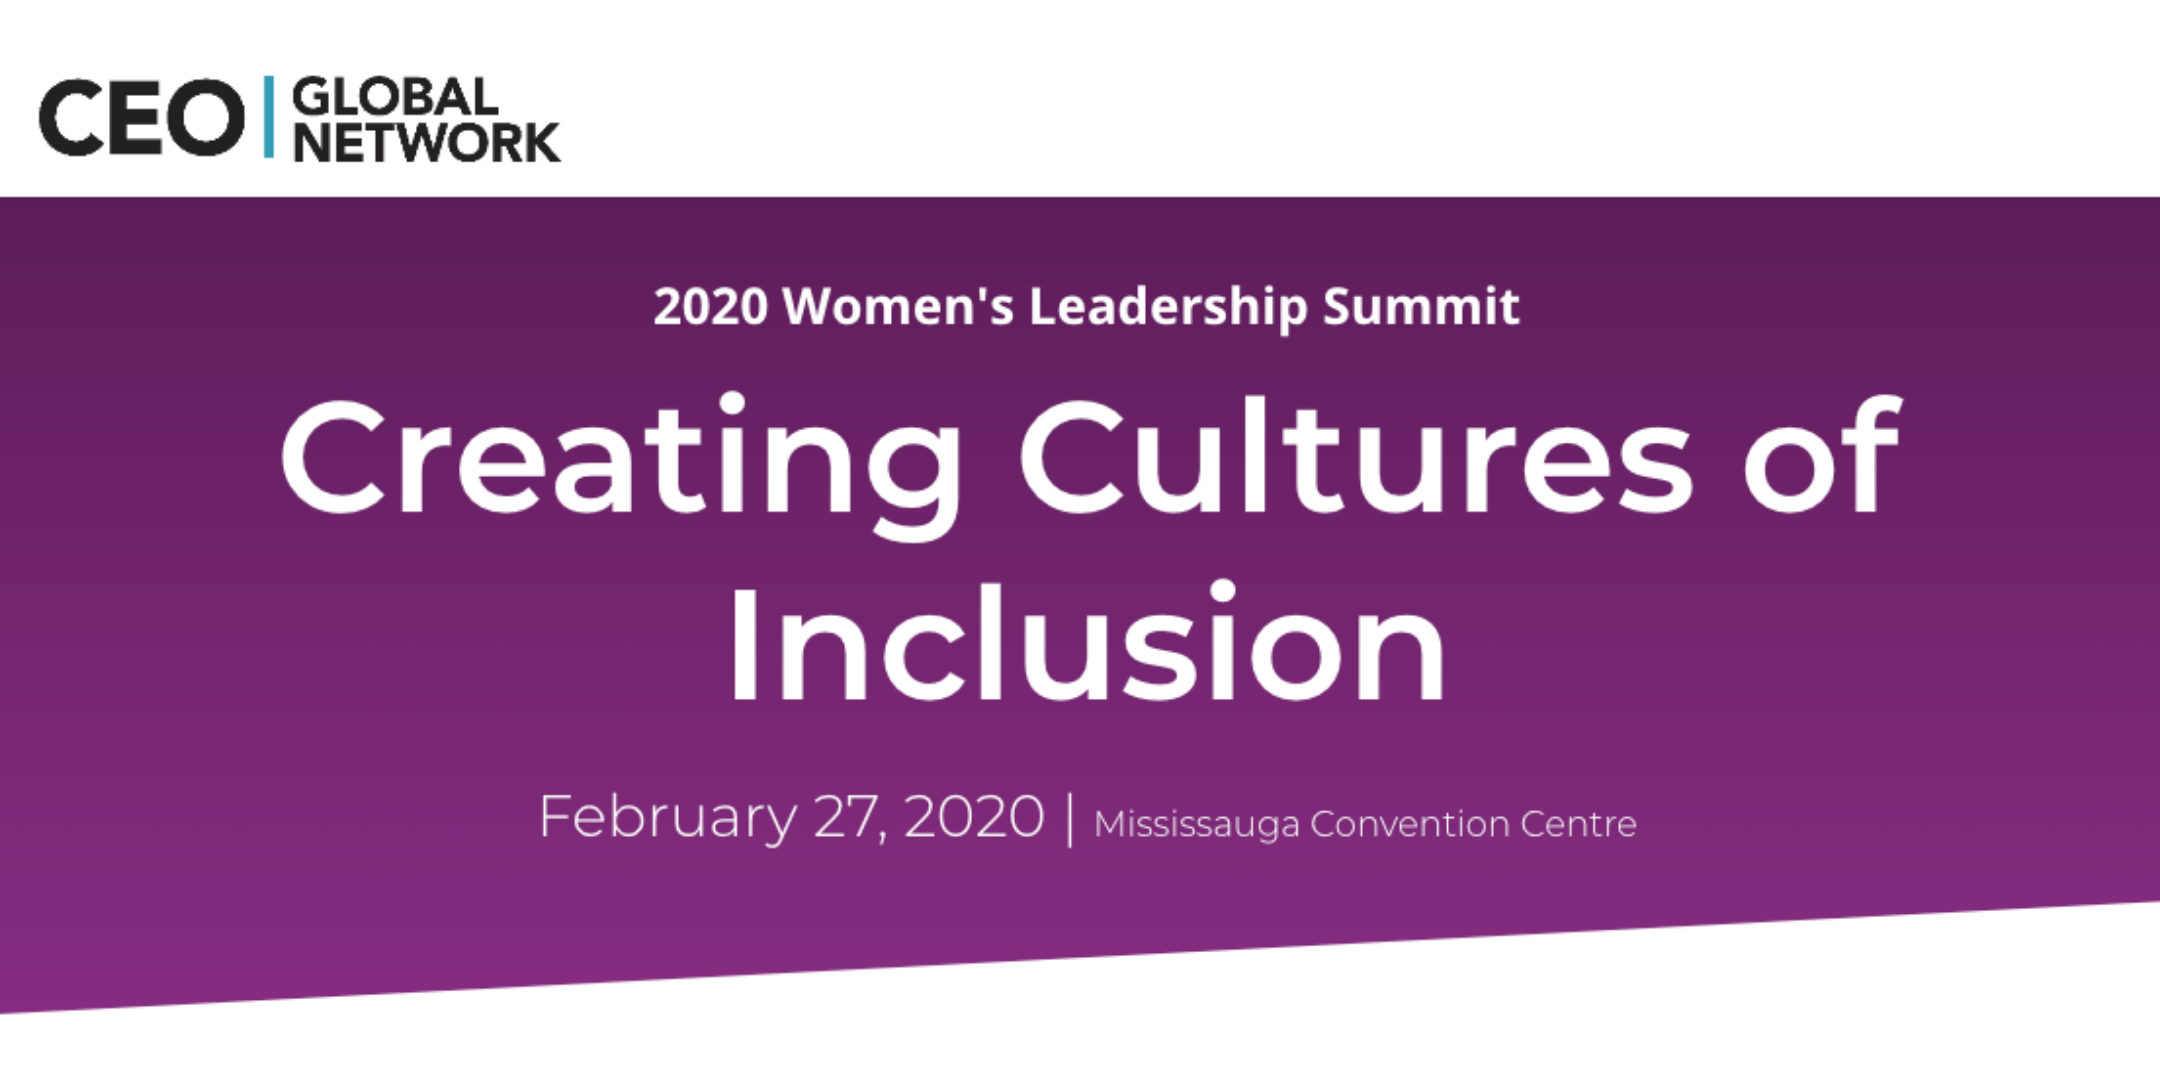 2020 Women's Leadership Summit: Creating Cultures of Inclusion